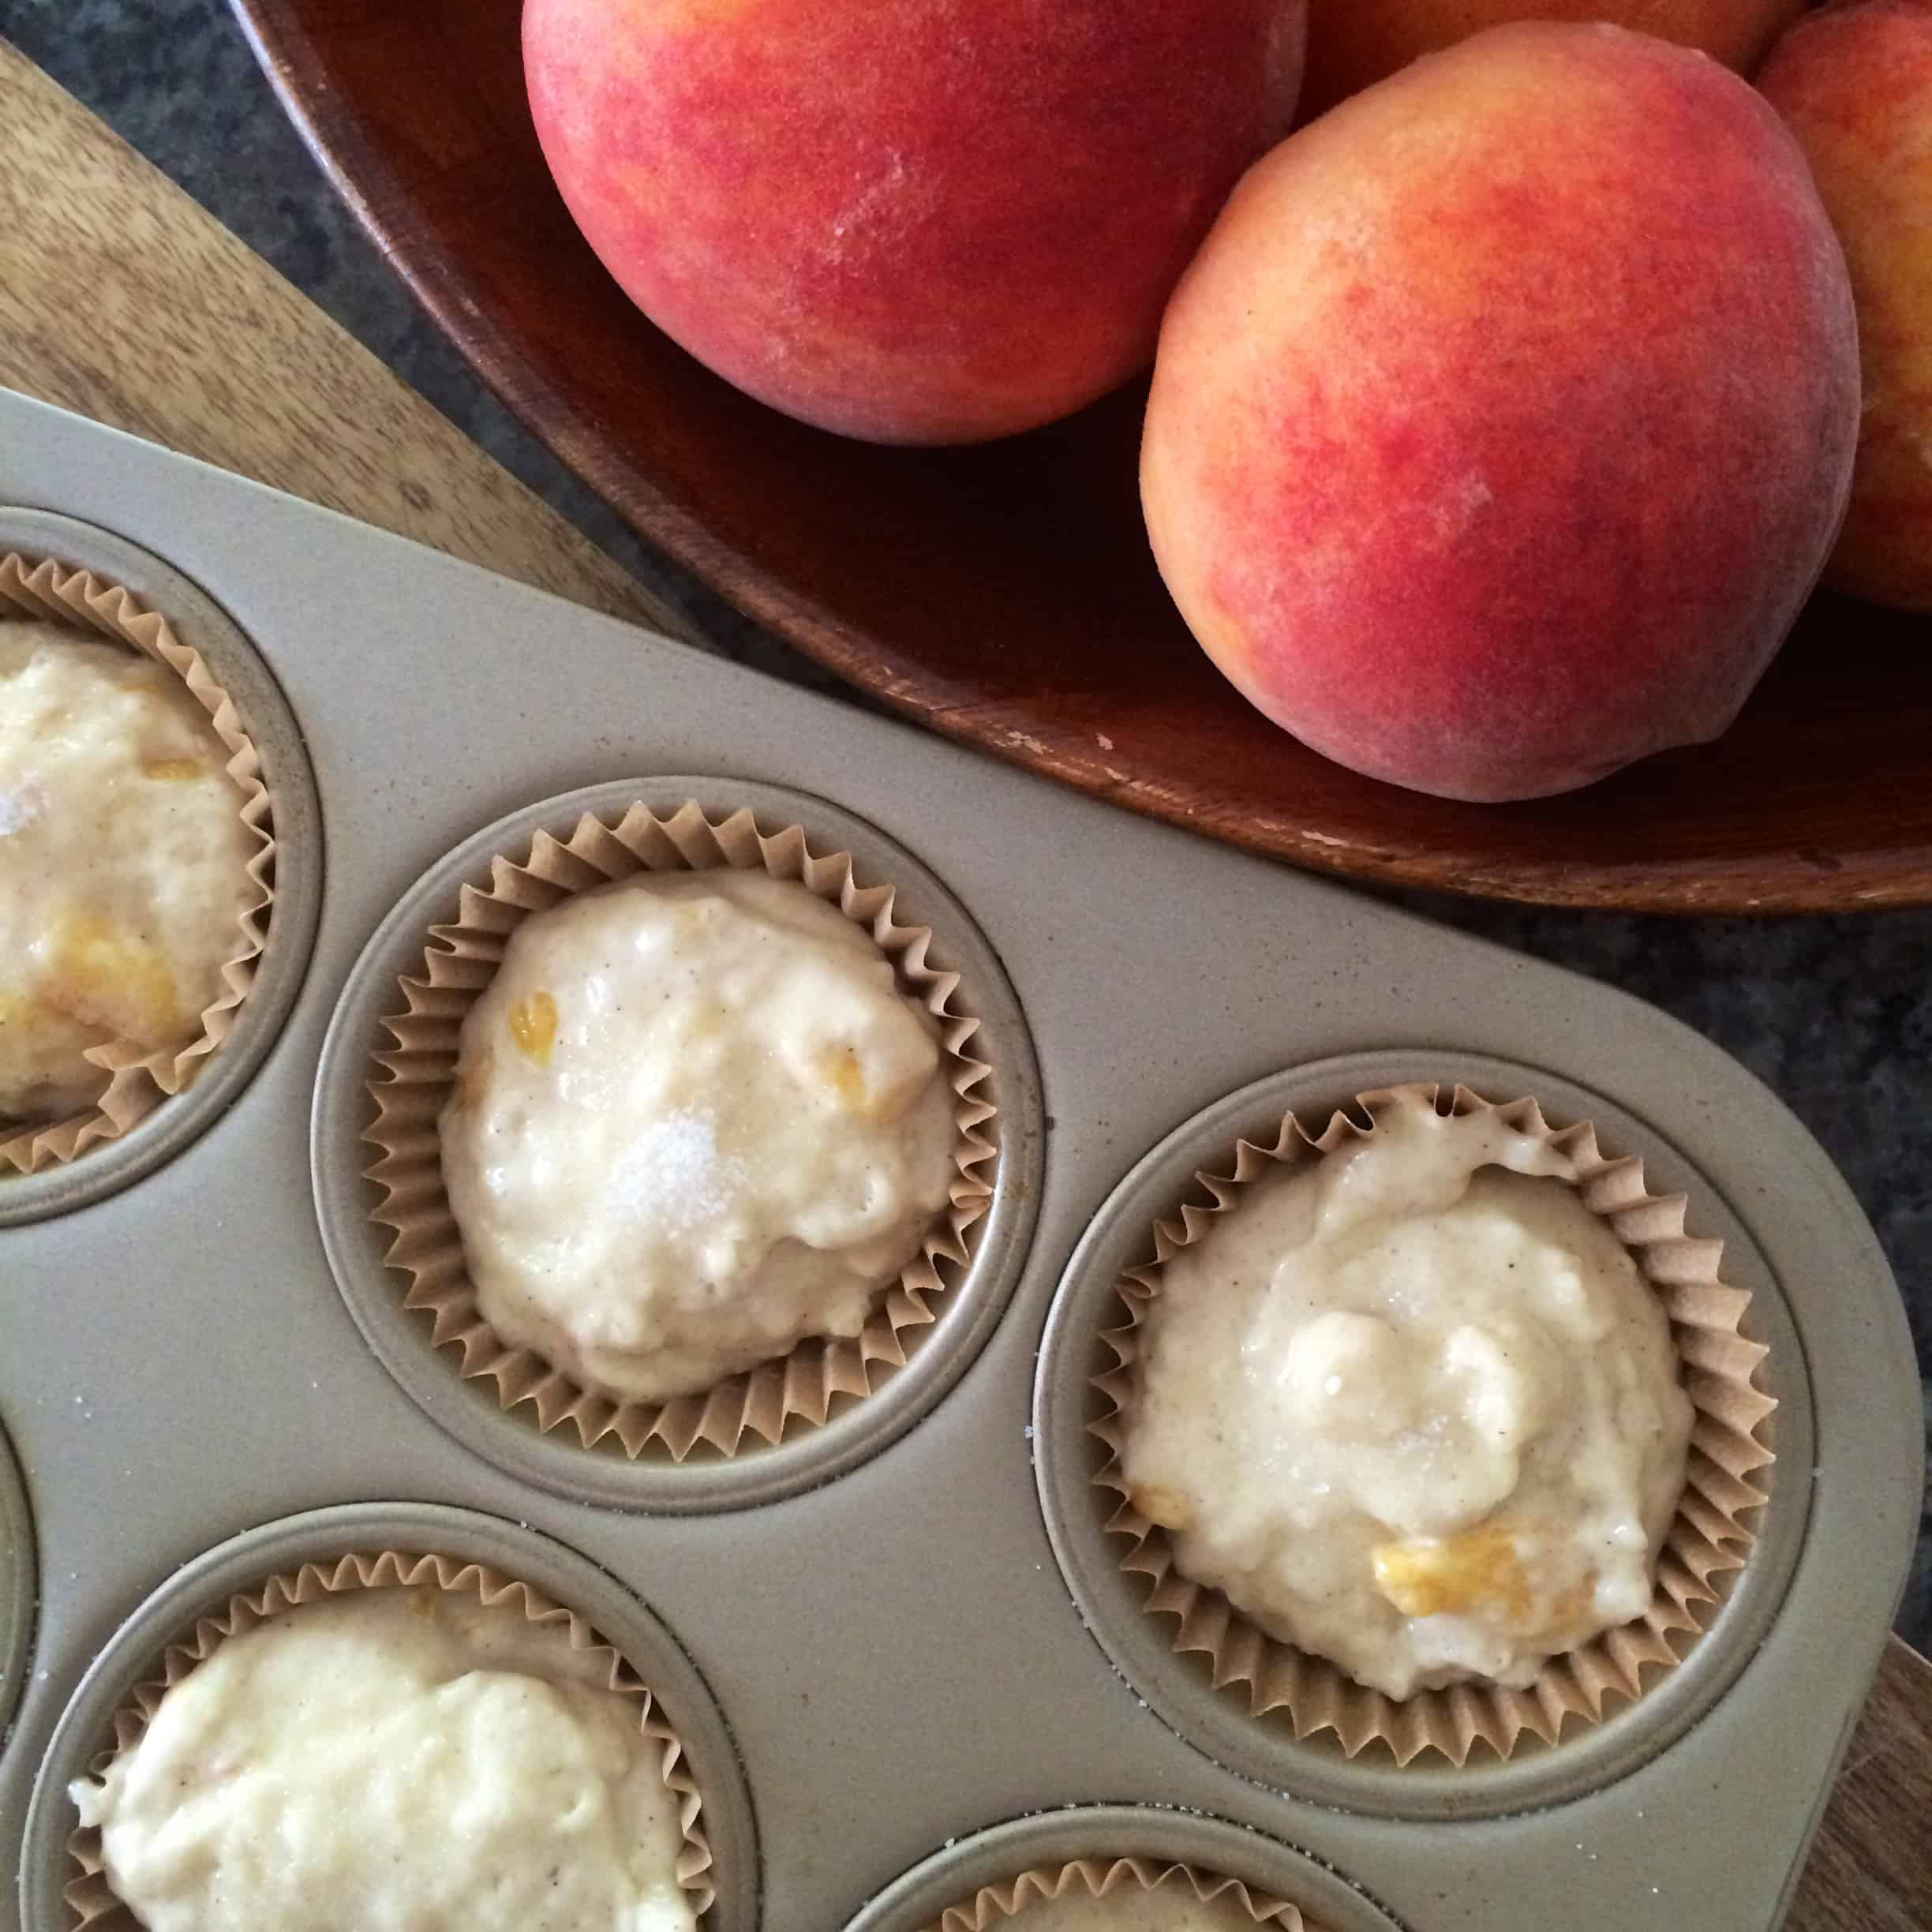 muffin batter before baking and a bowl of fresh peaches